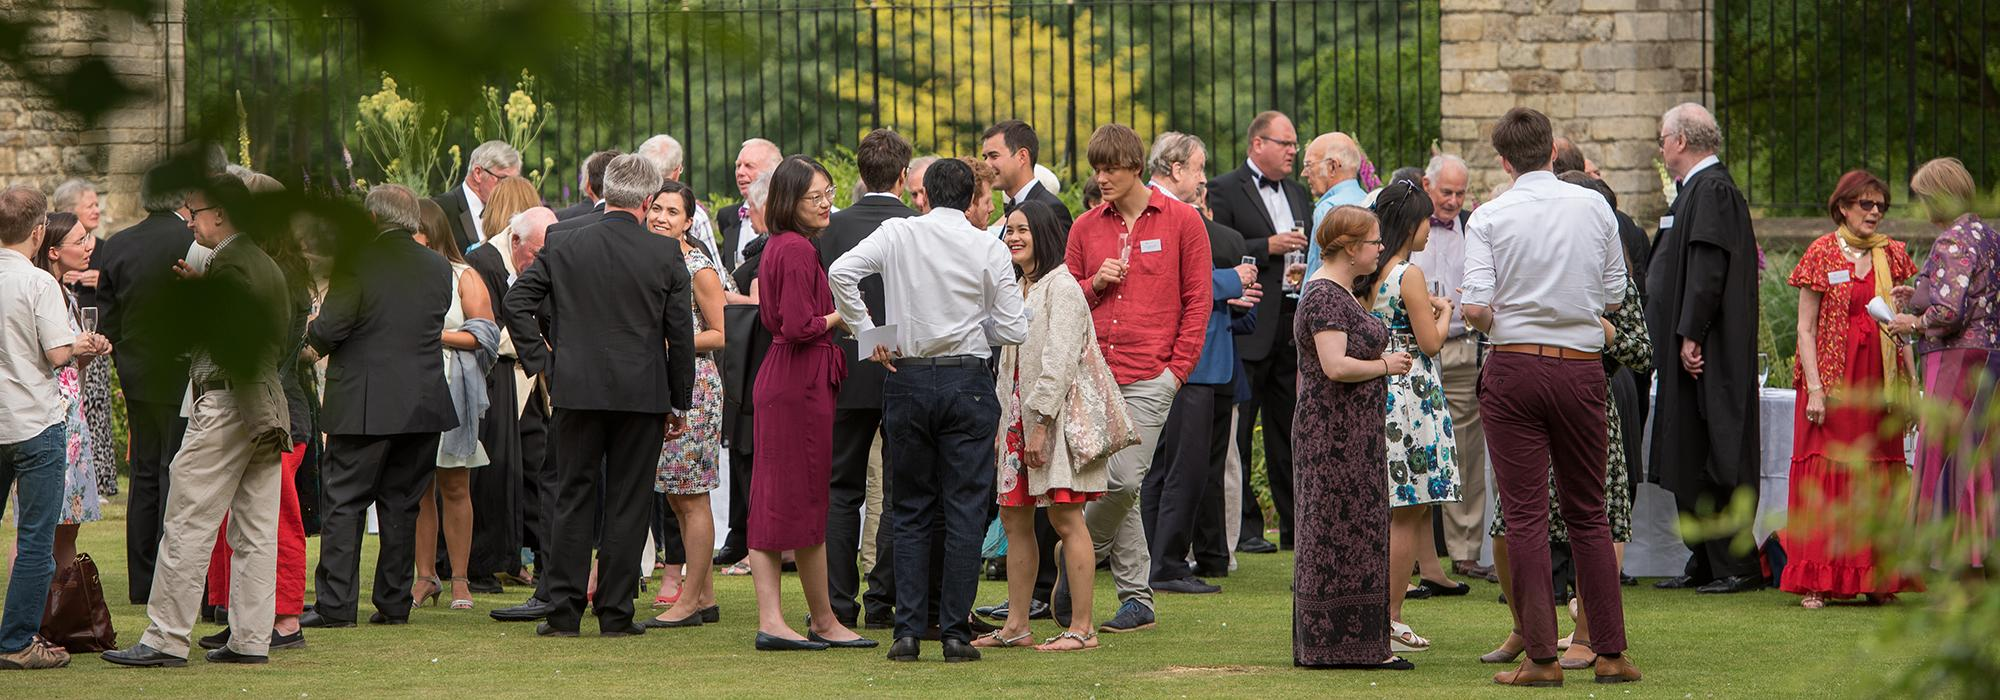 Alumni at a reception for members of the 1264 Society, part of the Merton Weekend 2018 - Photo: © John Cairns - www.johncairns.co.uk